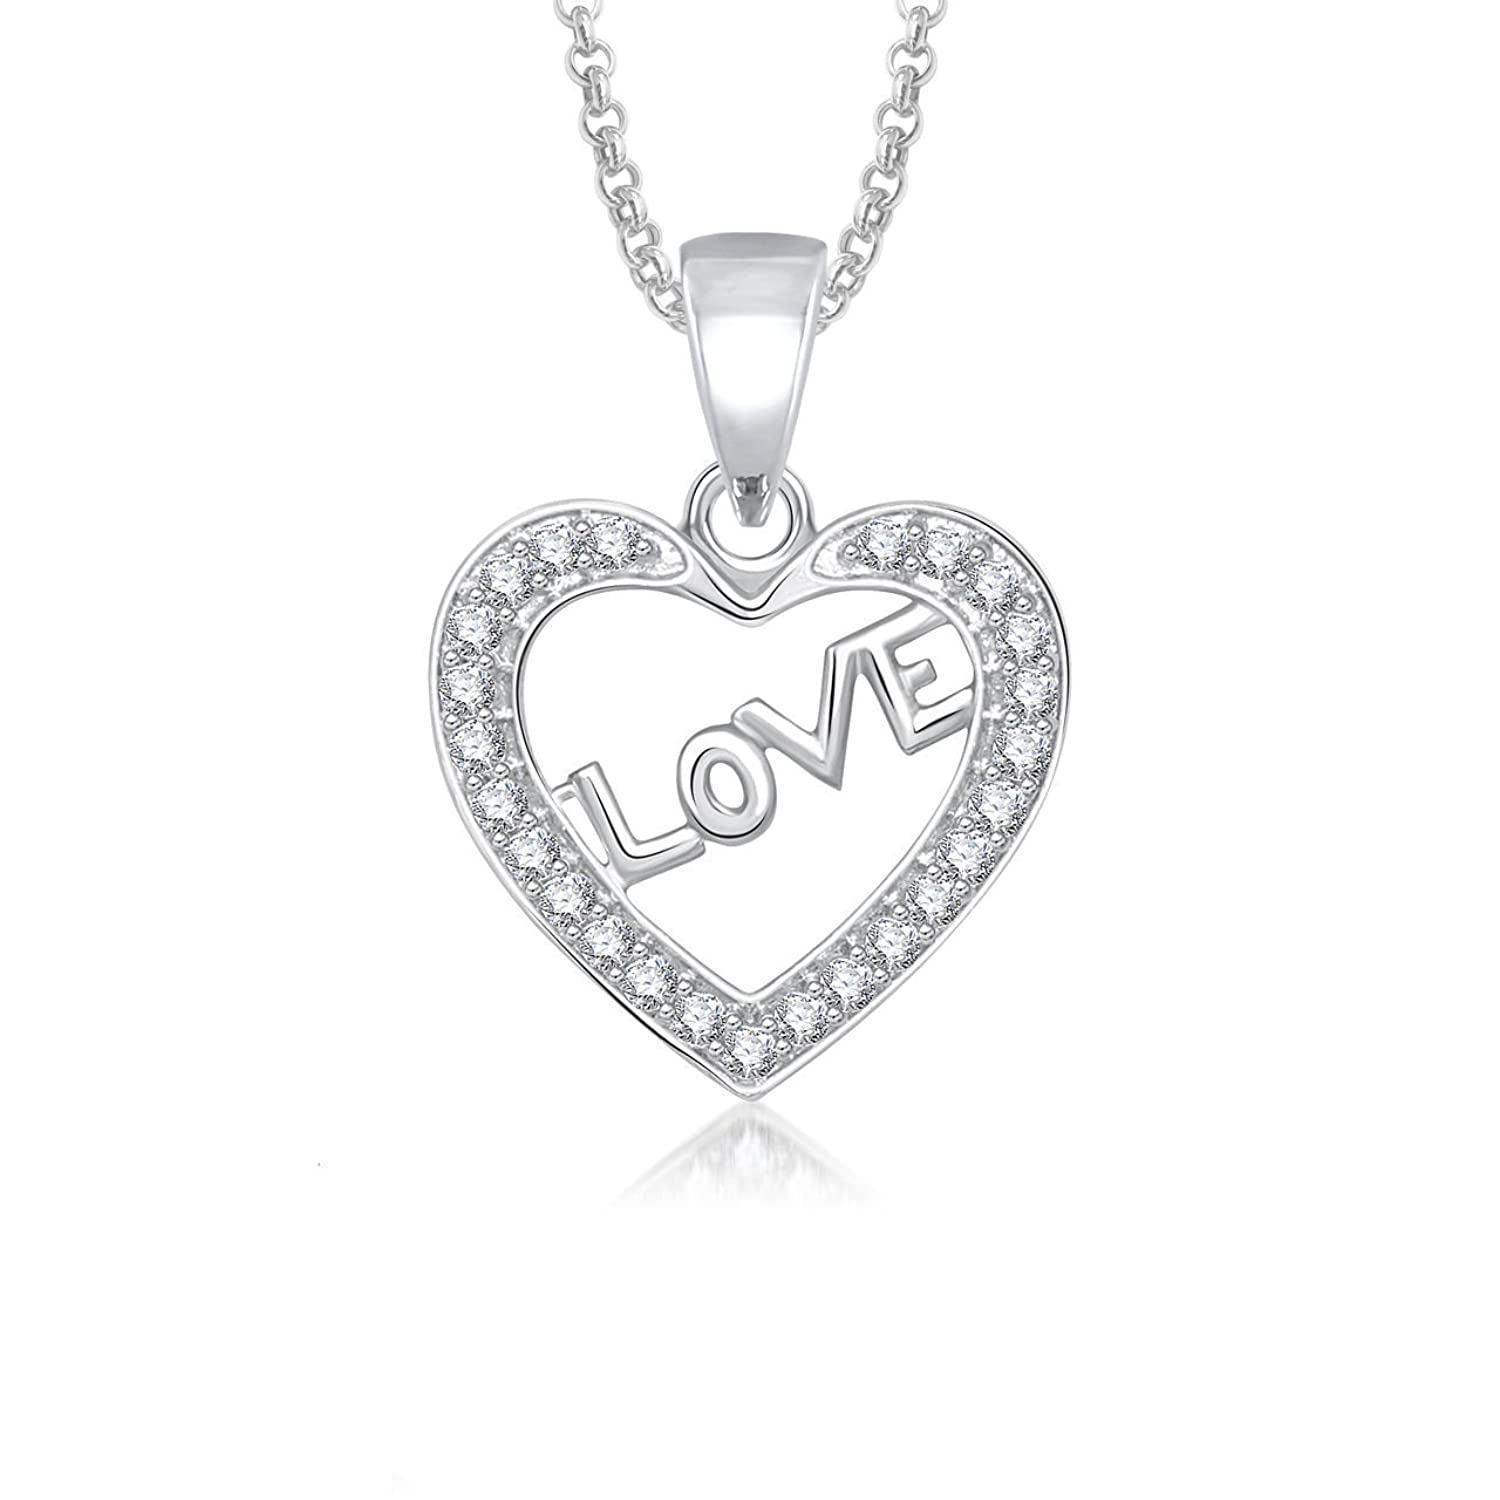 buy jewellery heart pendant low love dp store dual online for girls at india beautiful locket and gifts women valentine in lockets amazon meenaz prices